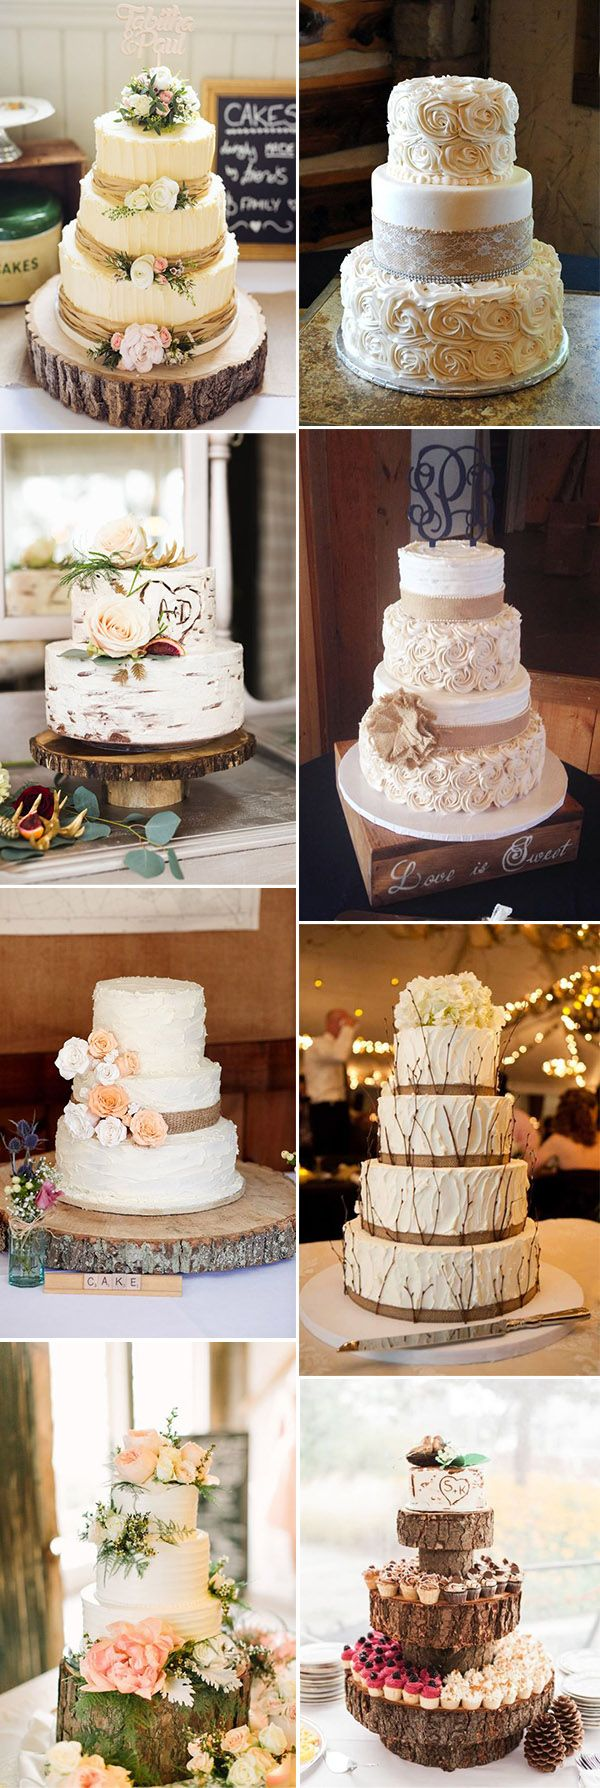 cake plates for wedding 25 best ideas about rustic cake stands on 2275